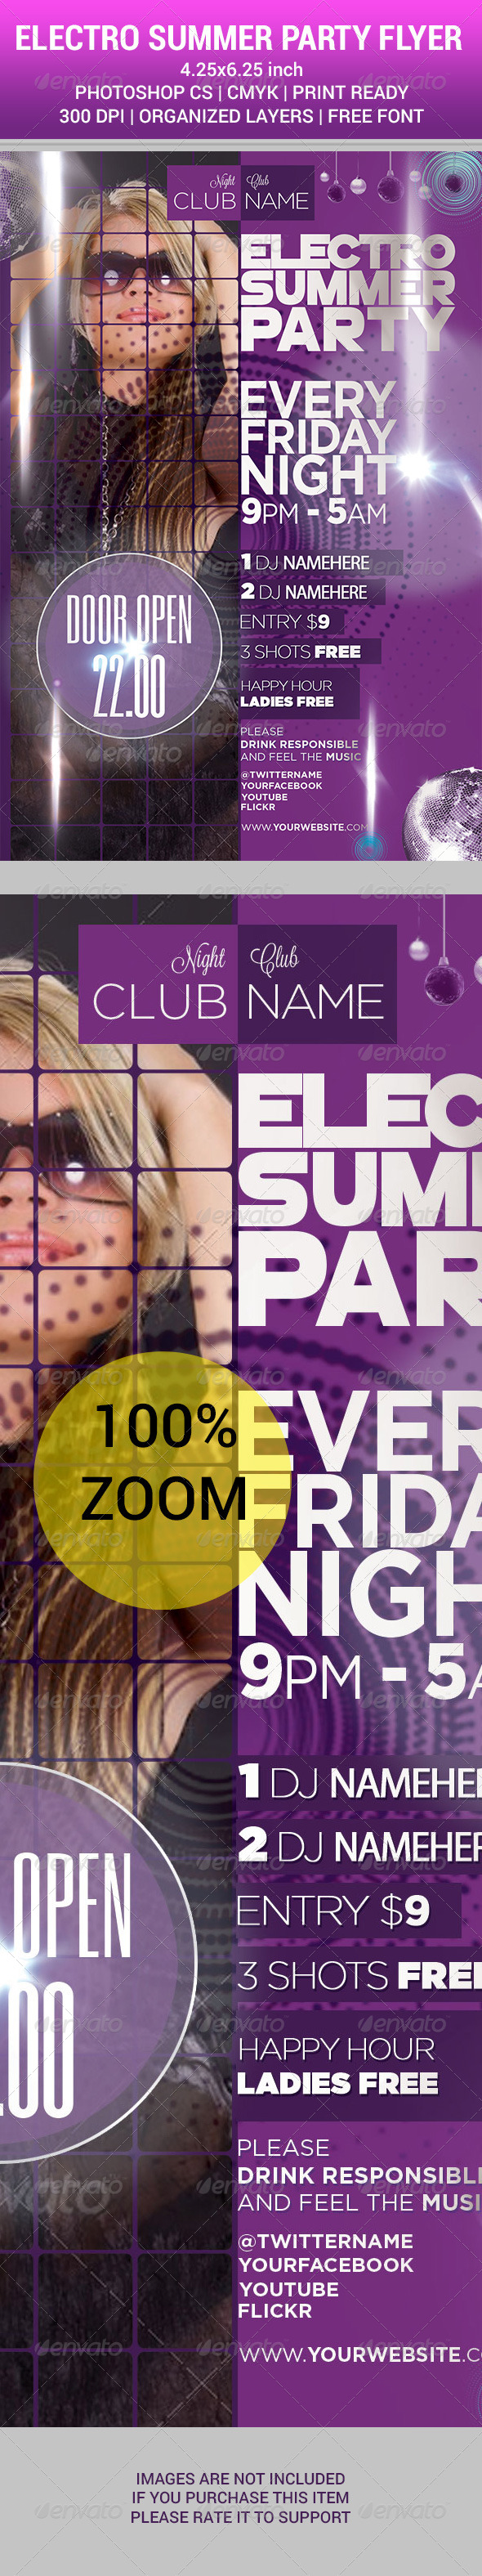 GraphicRiver ELECTRO SUMMER PARTY 2014 Flyer 8349263